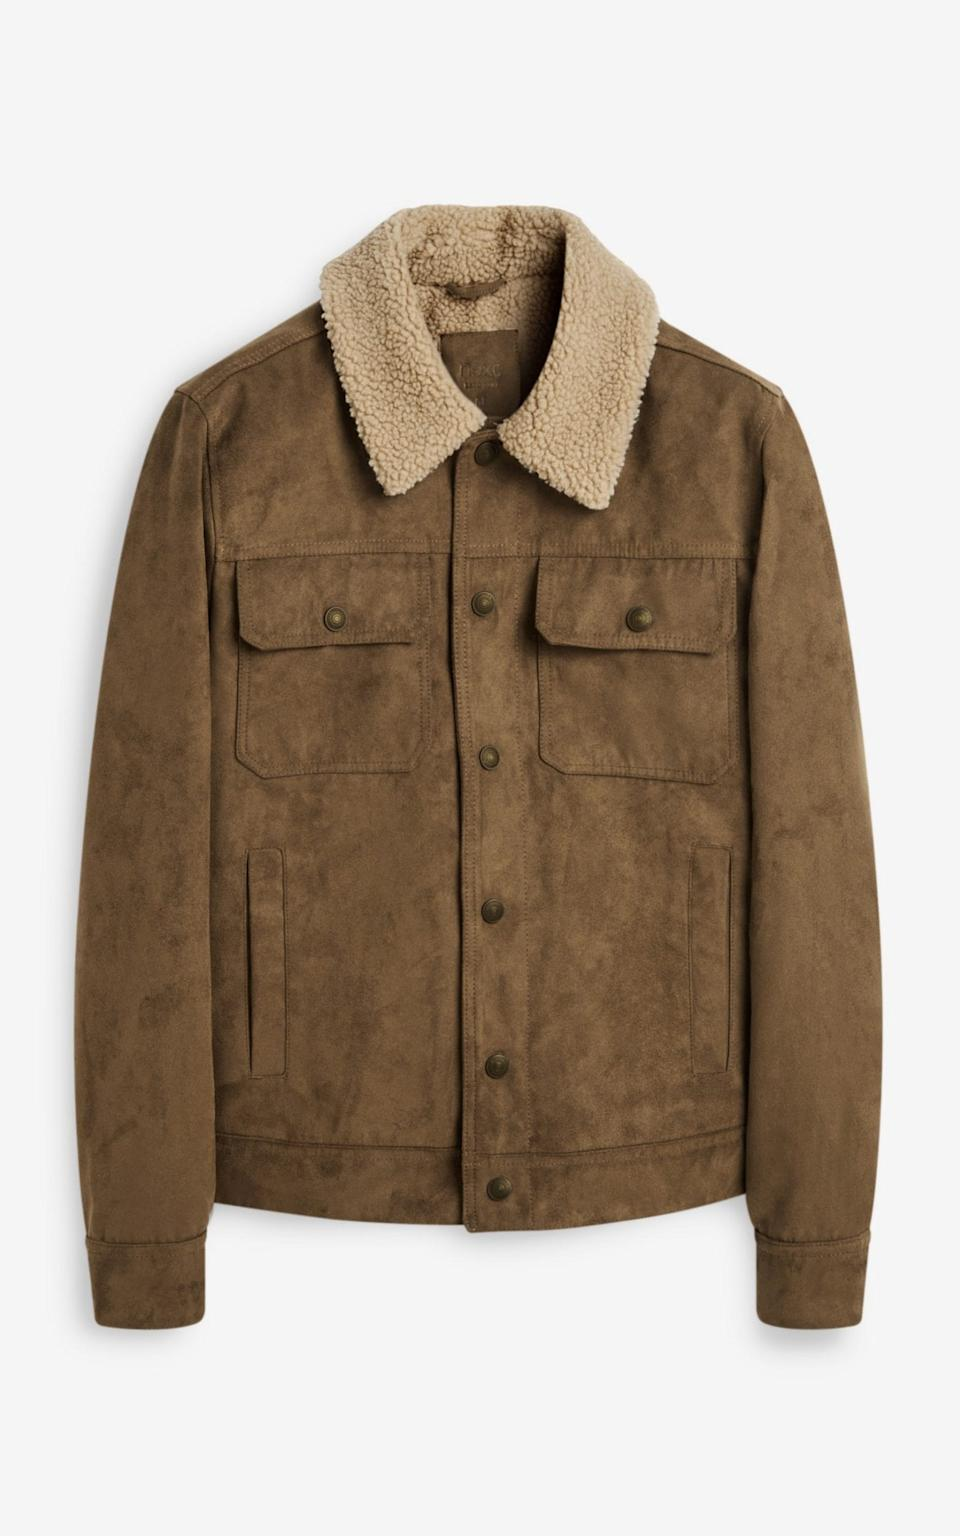 Faux suede jacket with Borg collar, £65, Next